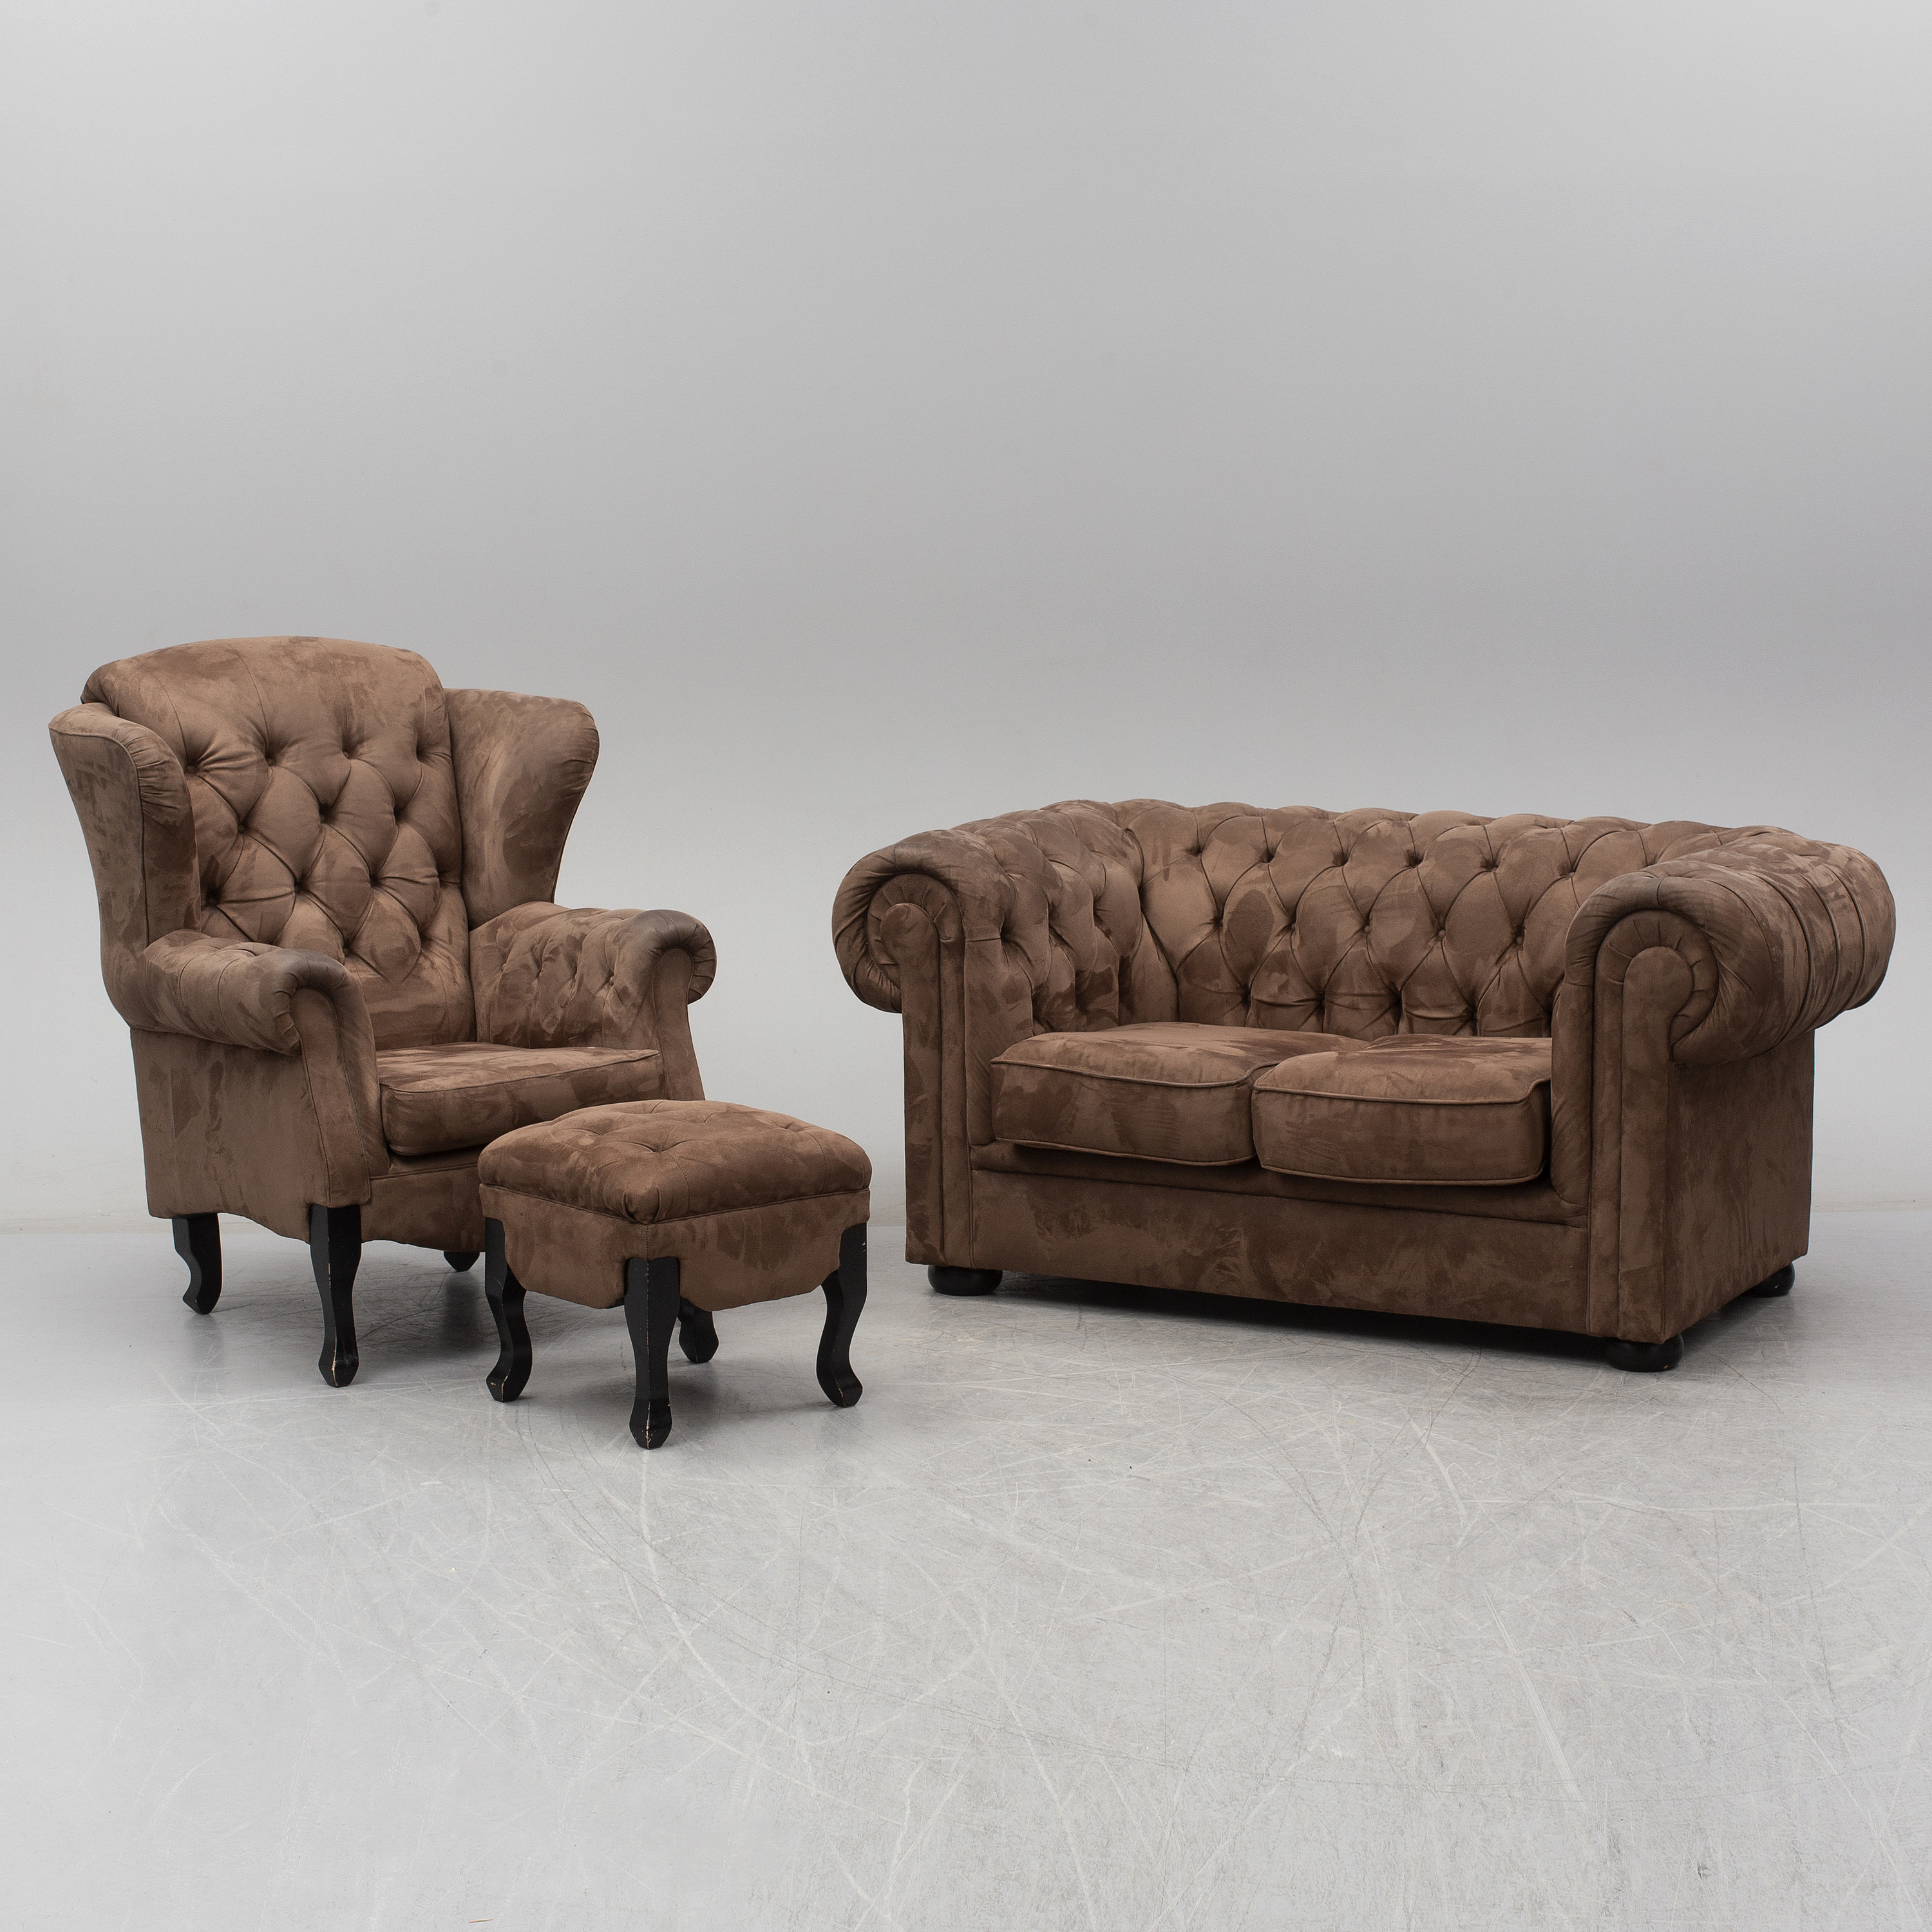 A Chesterfield Sofa And An Armchair With Foot Stool 2000s